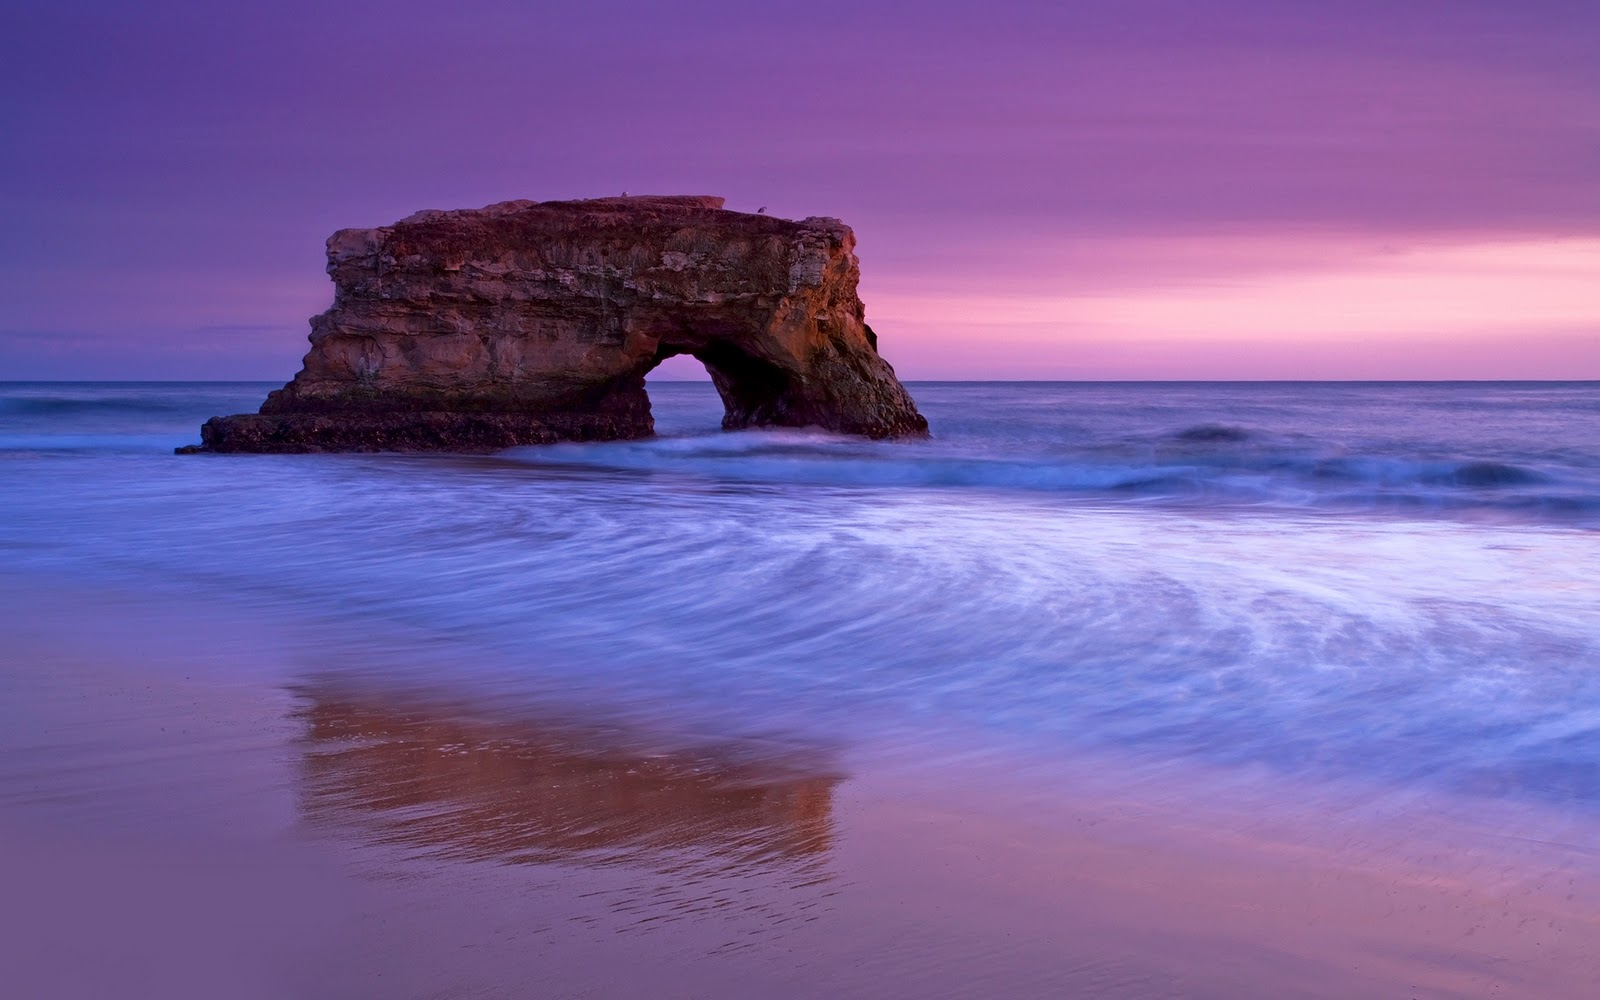 http://1.bp.blogspot.com/-Avpfd6MnajE/Tx2hcaqoIMI/AAAAAAAAAdA/a7amhdYmLkY/s1600/Wallpaper-sea-beach-arch-sunset-evening-cliff-photo.jpg